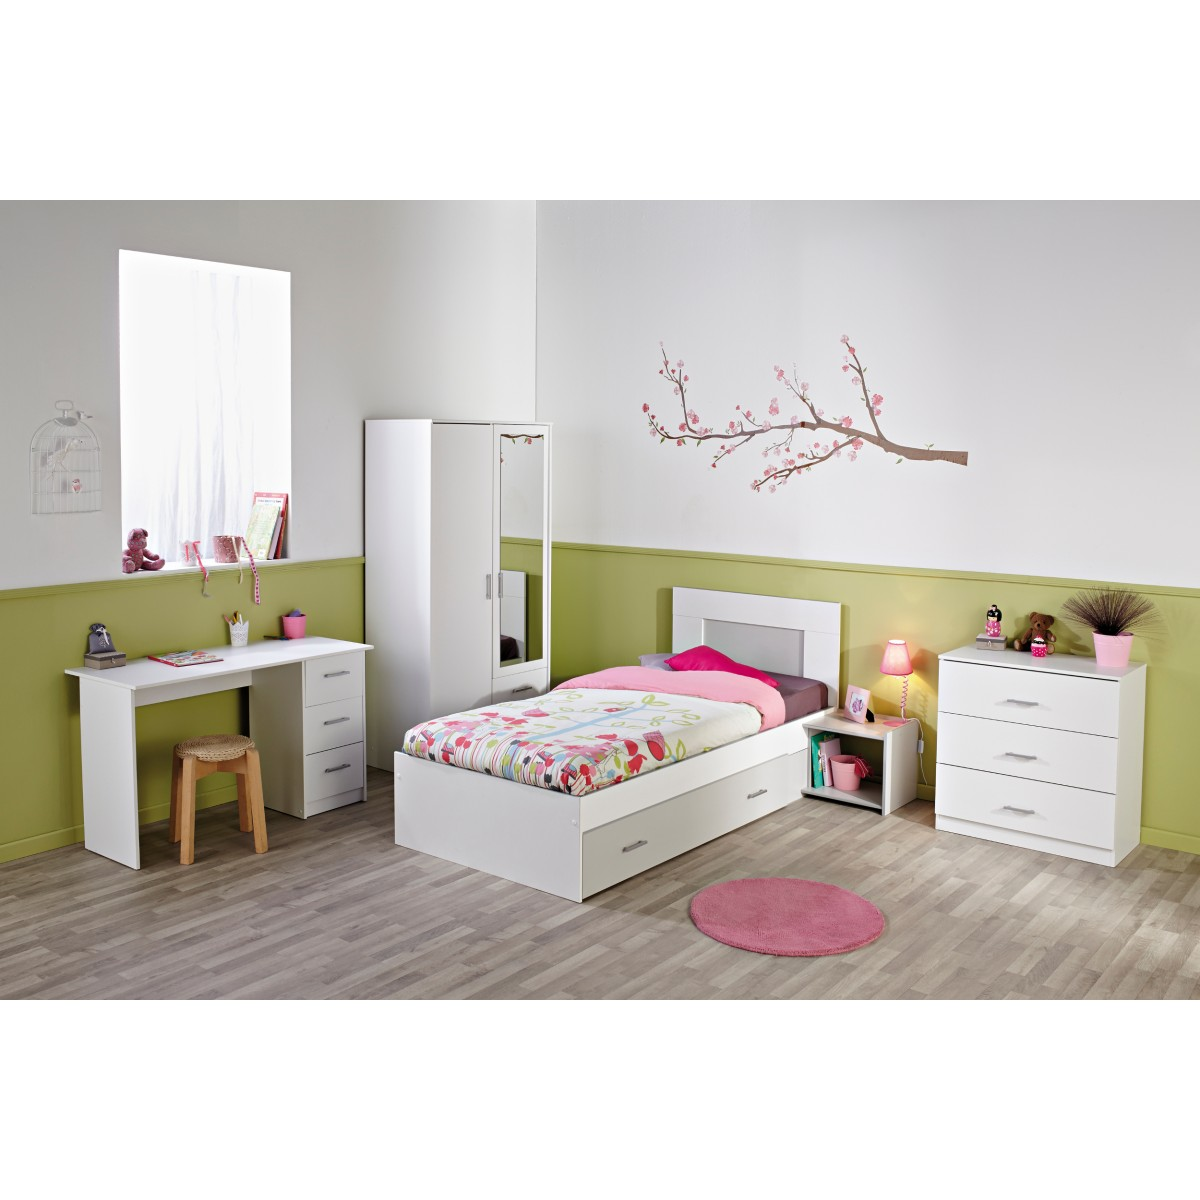 someo chambre compl te enfant en bois blanc m g ve et gr. Black Bedroom Furniture Sets. Home Design Ideas